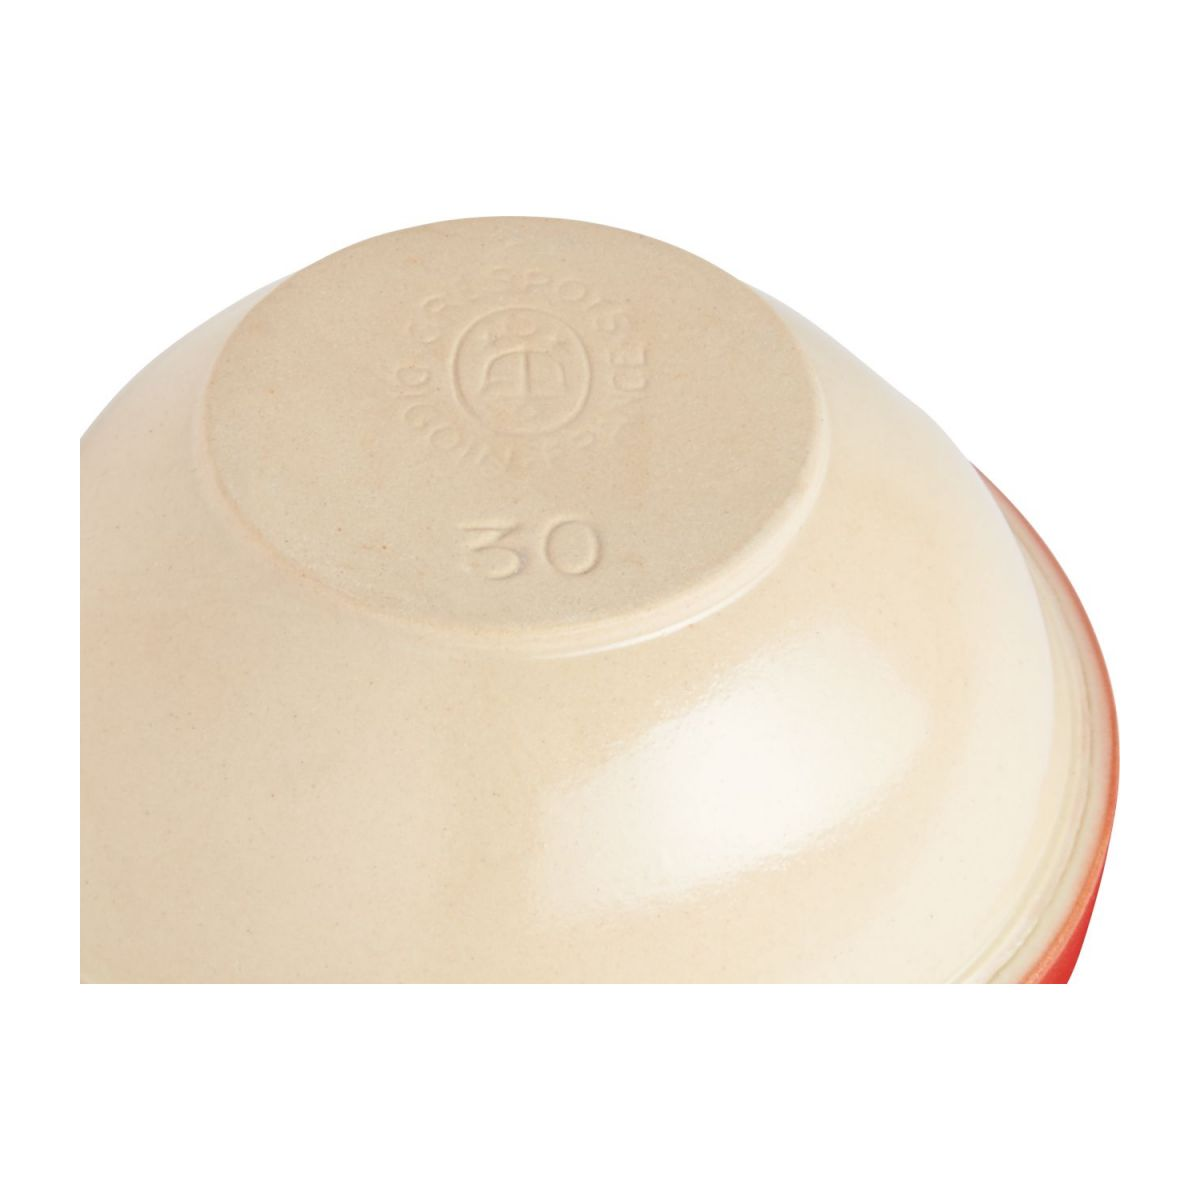 Preparation bowl made of sandstone, red and natural, 2.1L n°4